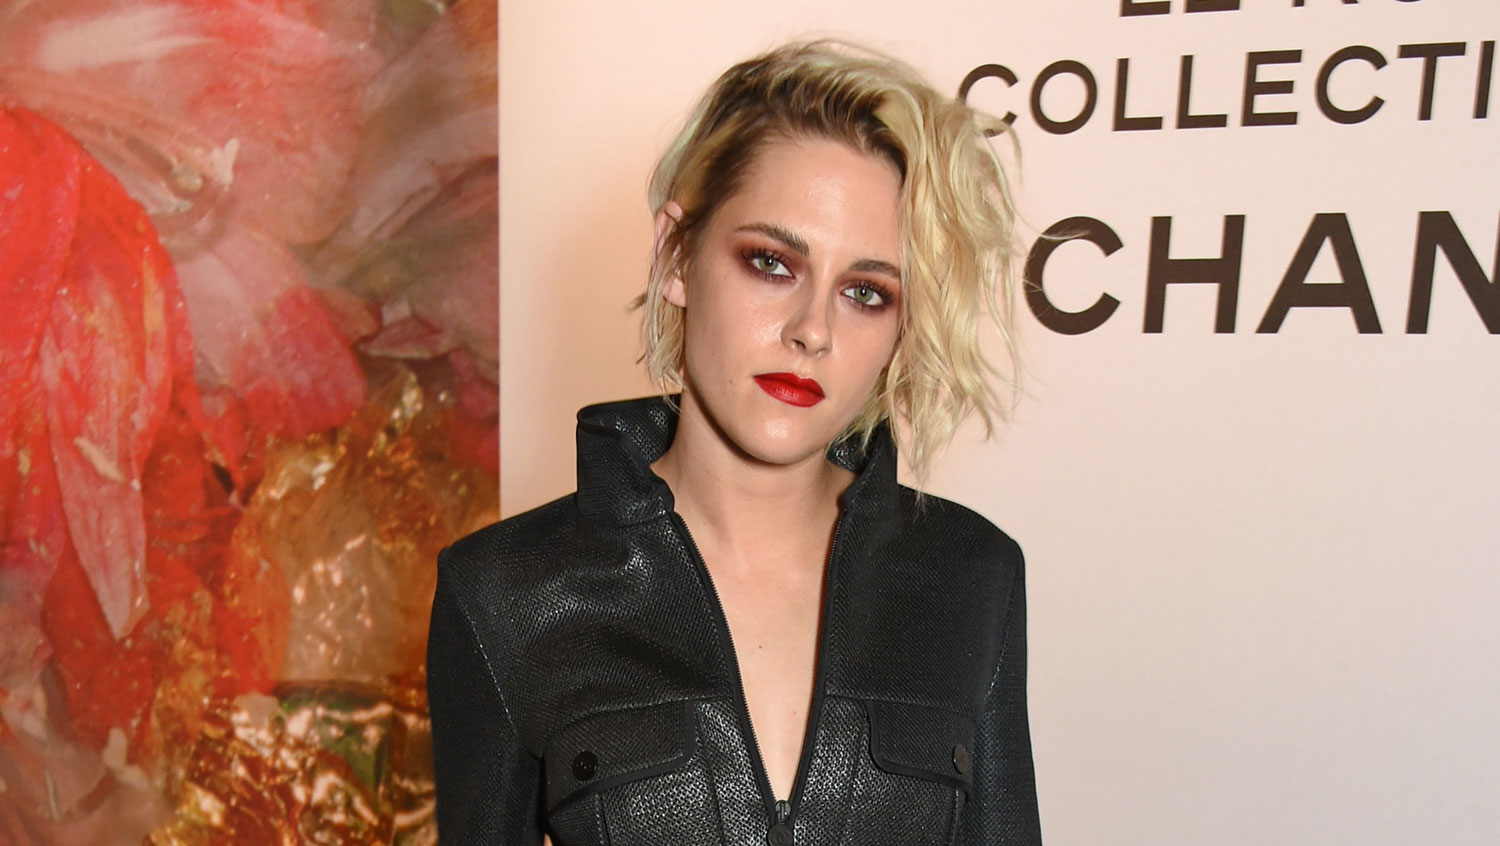 chanel beauty kristen stewart fashionela